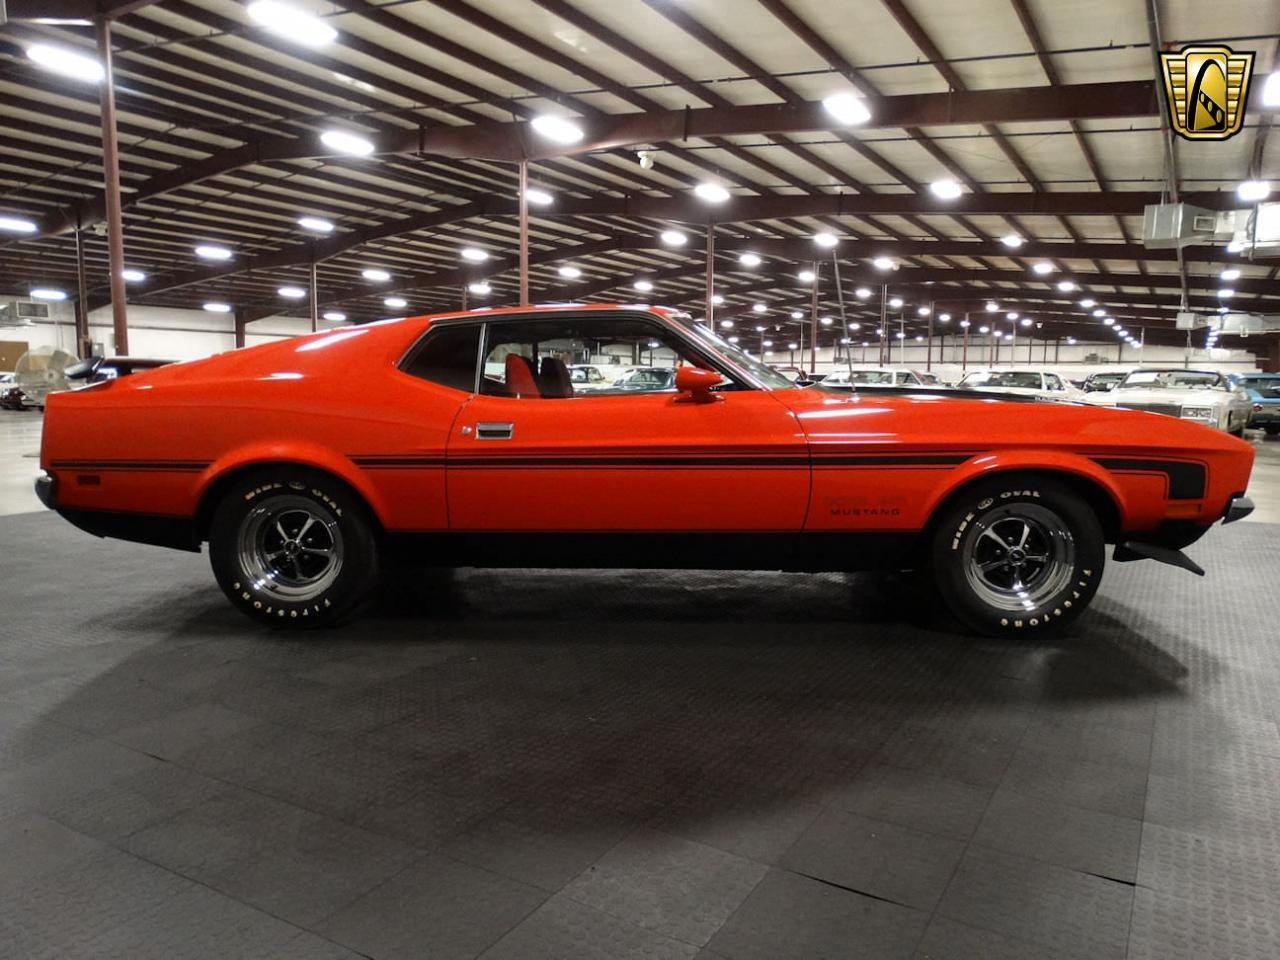 Large Picture of '71 Ford Mustang located in Indiana - $60,000.00 Offered by Gateway Classic Cars - Louisville - L6RZ